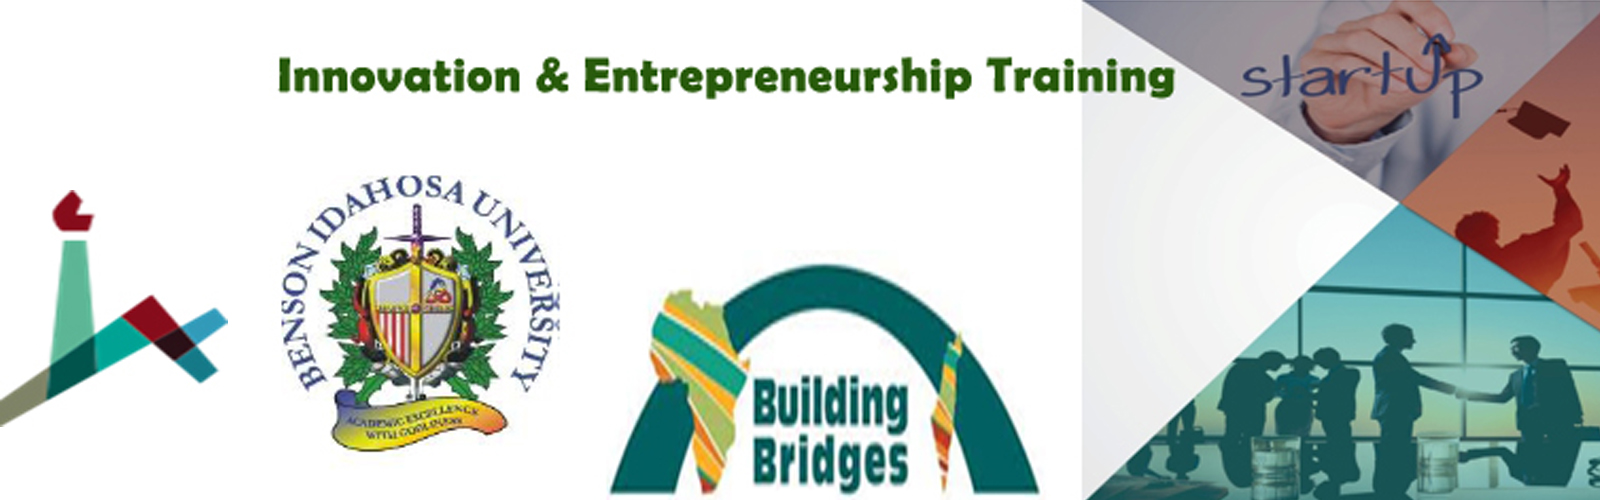 BIU-innovation-and-entrepreneurship-training